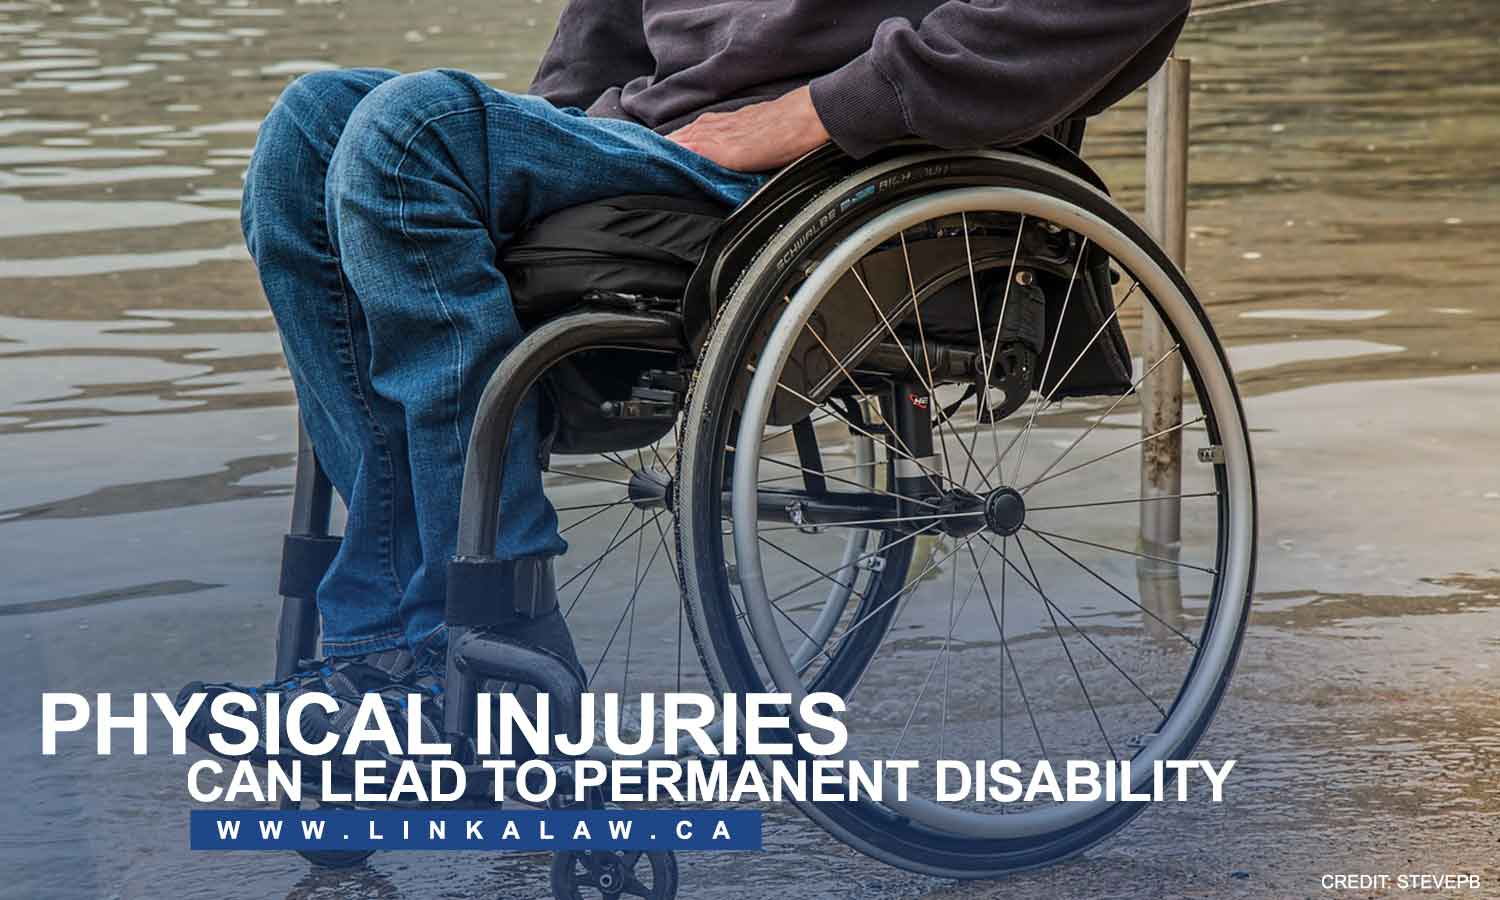 Physical injuries can lead to permanent disability